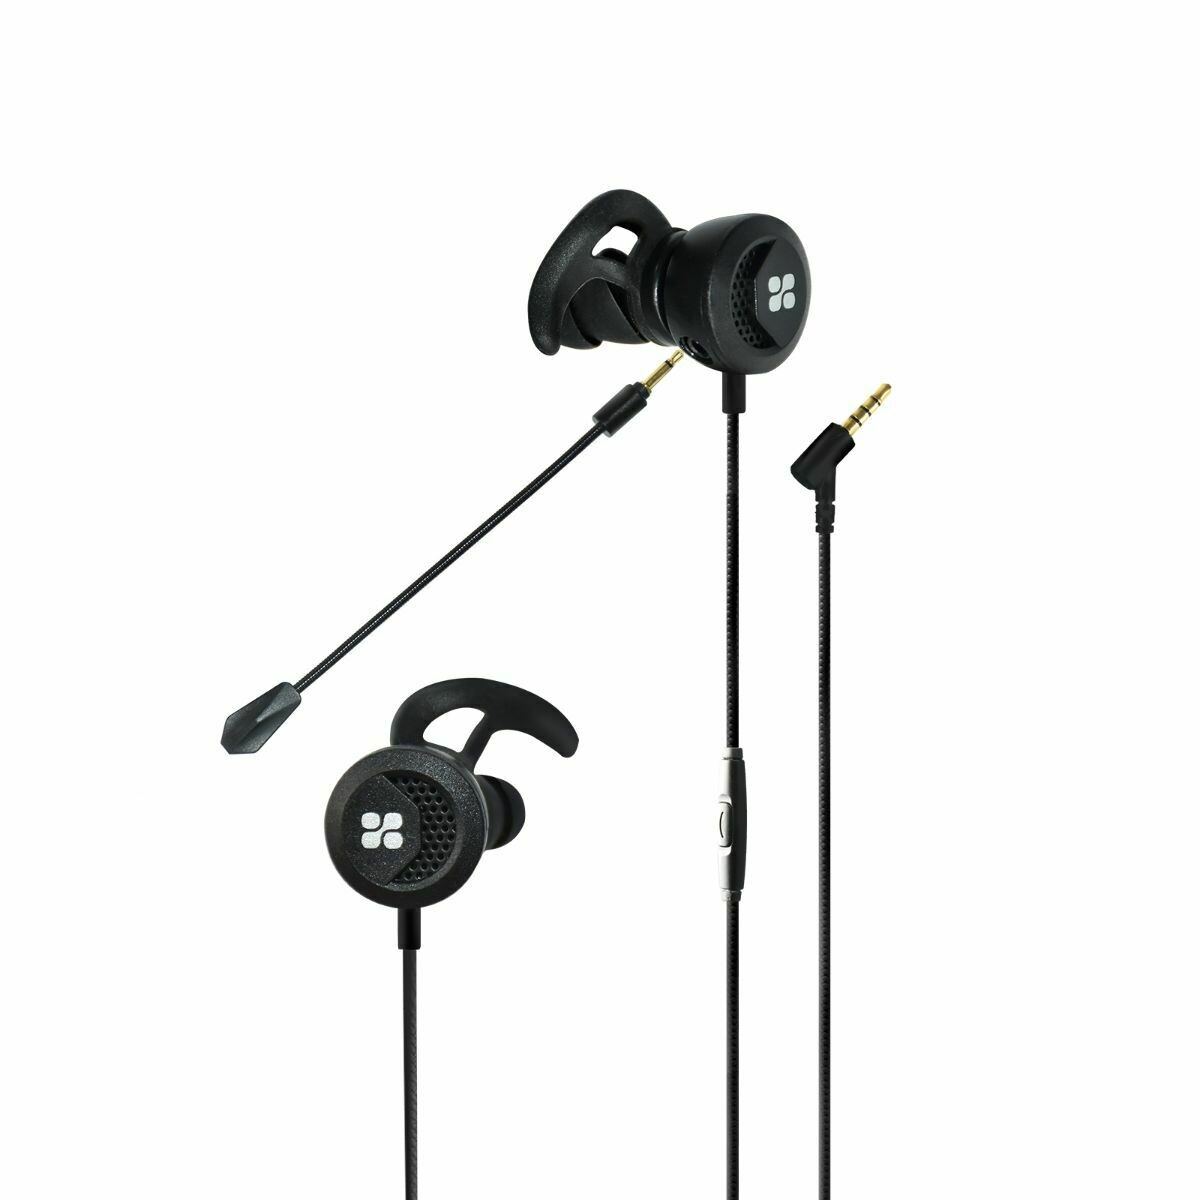 Clink High Fidelity In-Ear Gaming Earphone With Detachable Microphone